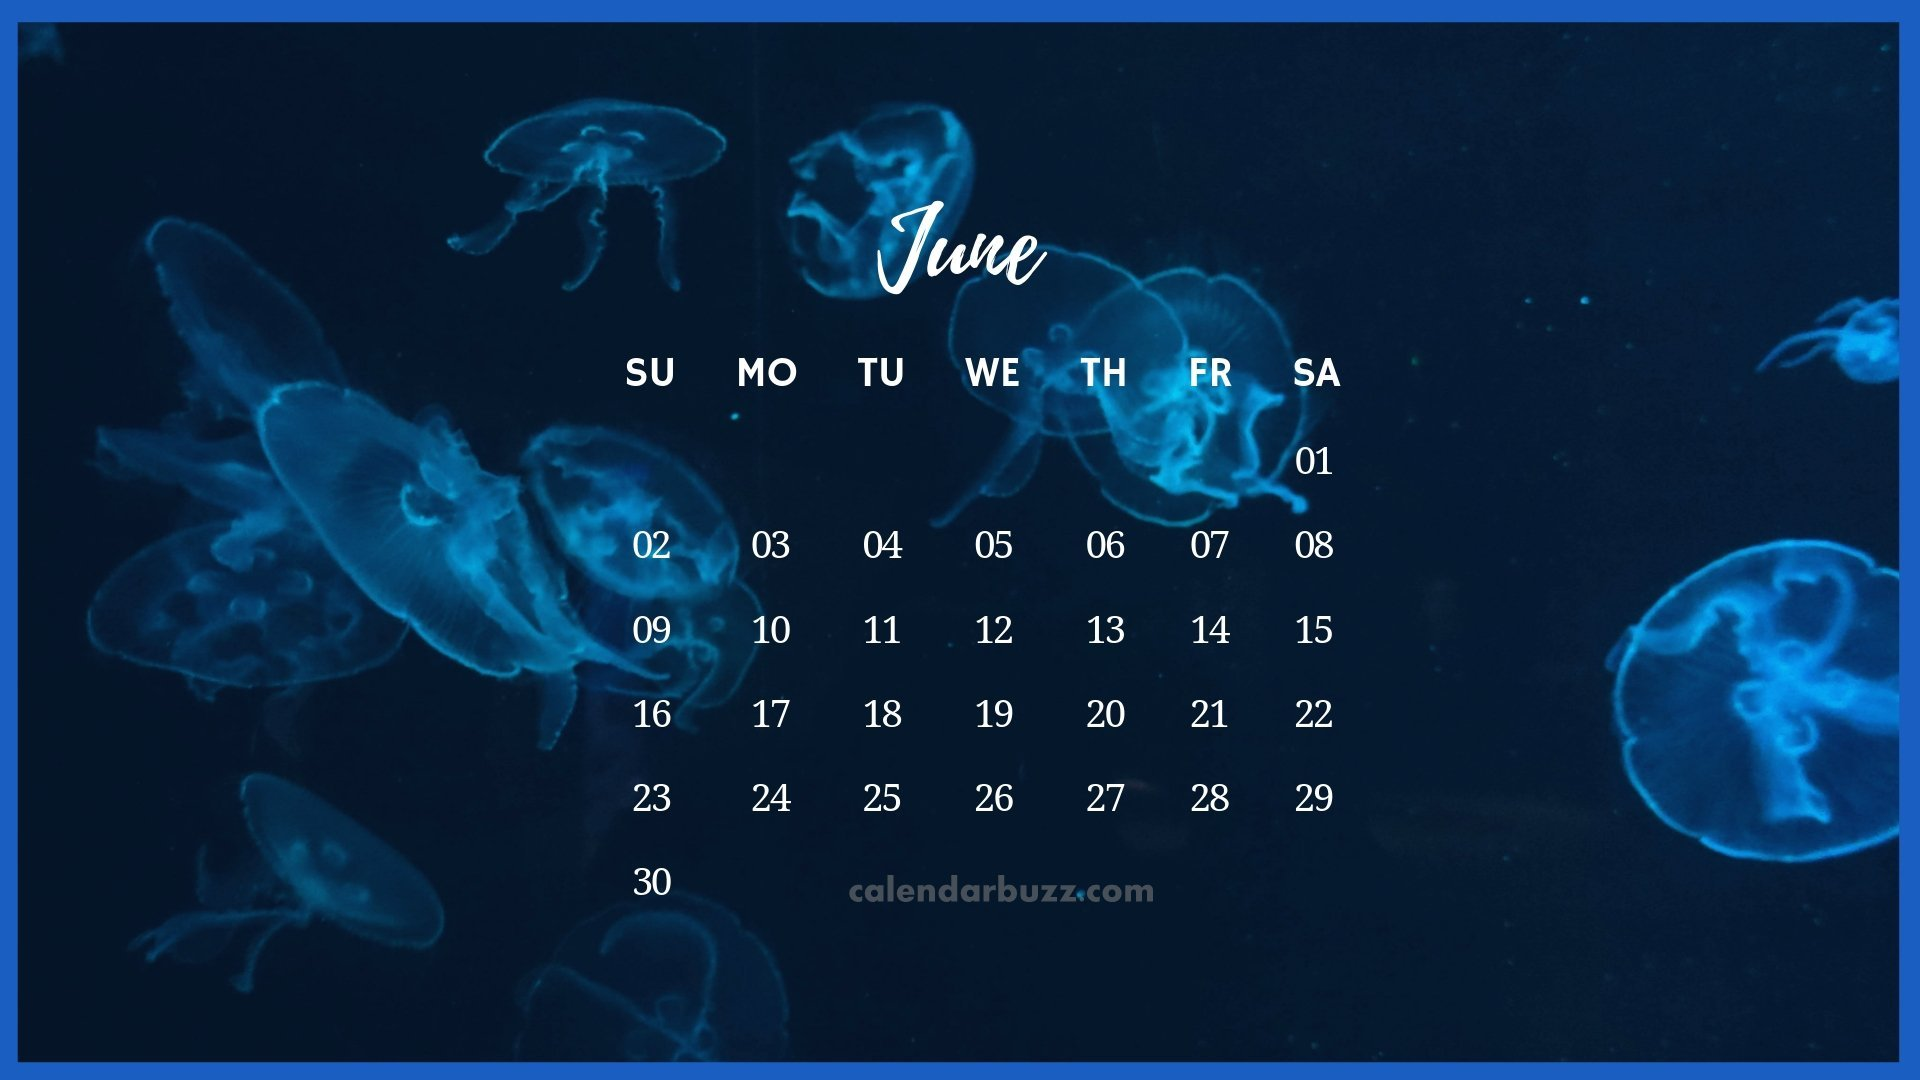 June 2019 Desktop Calendar Wallpaper 1920x1080